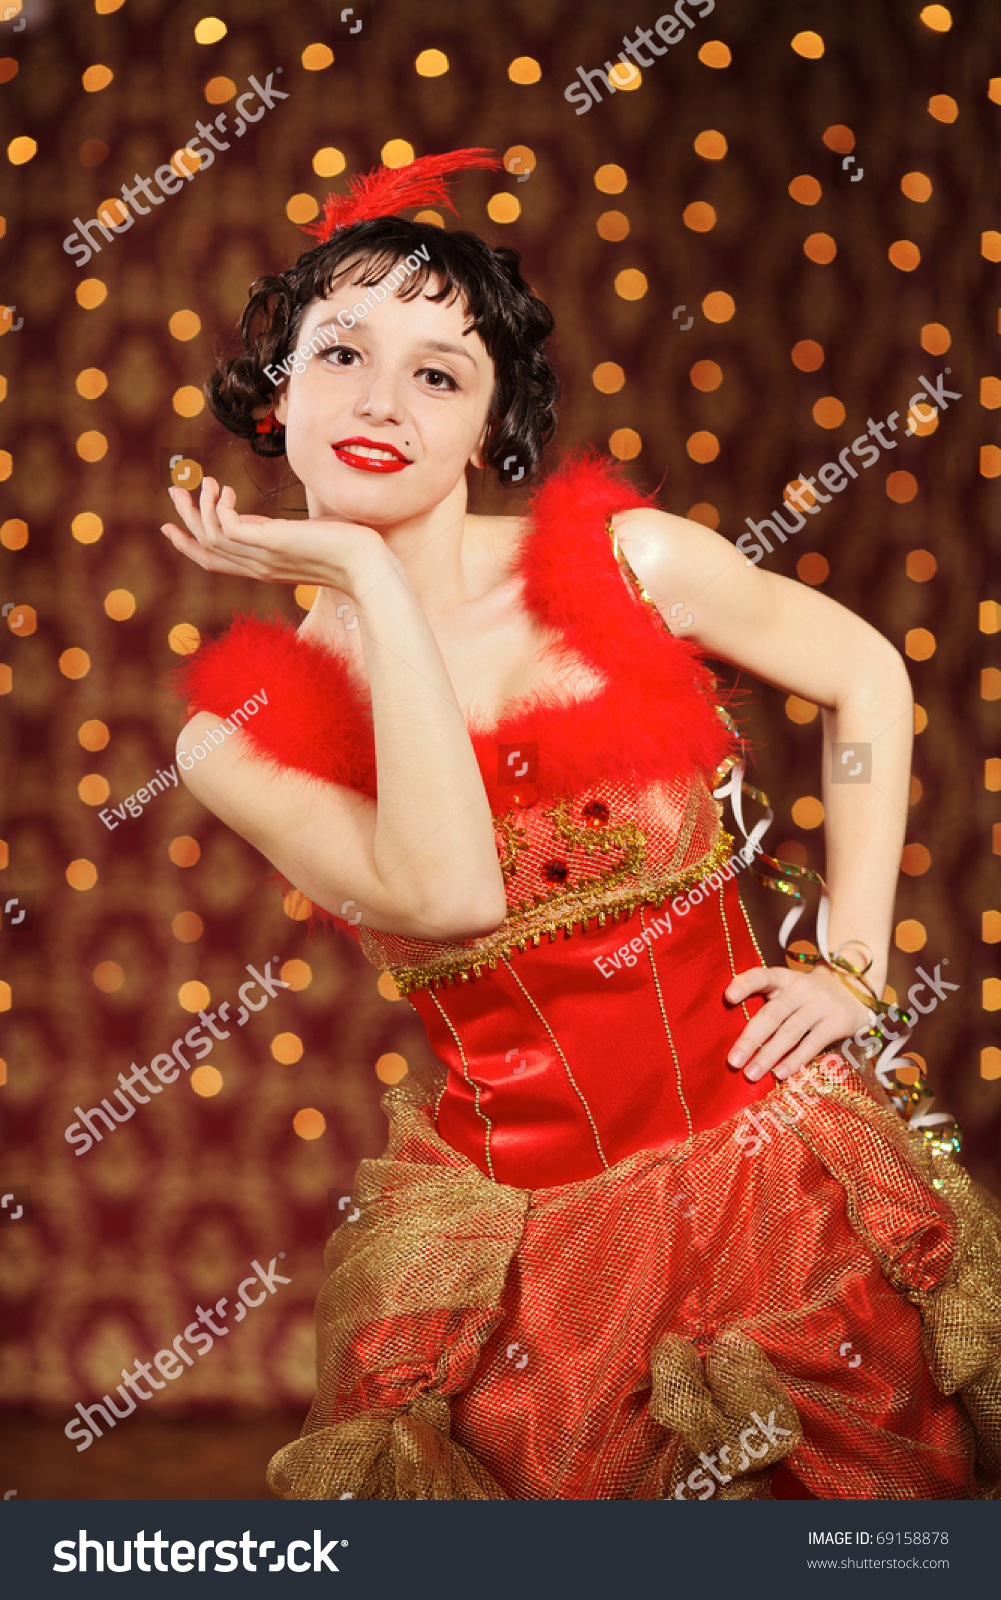 lady in red dress at the carnival stock photo 69158878 shutterstock. Black Bedroom Furniture Sets. Home Design Ideas